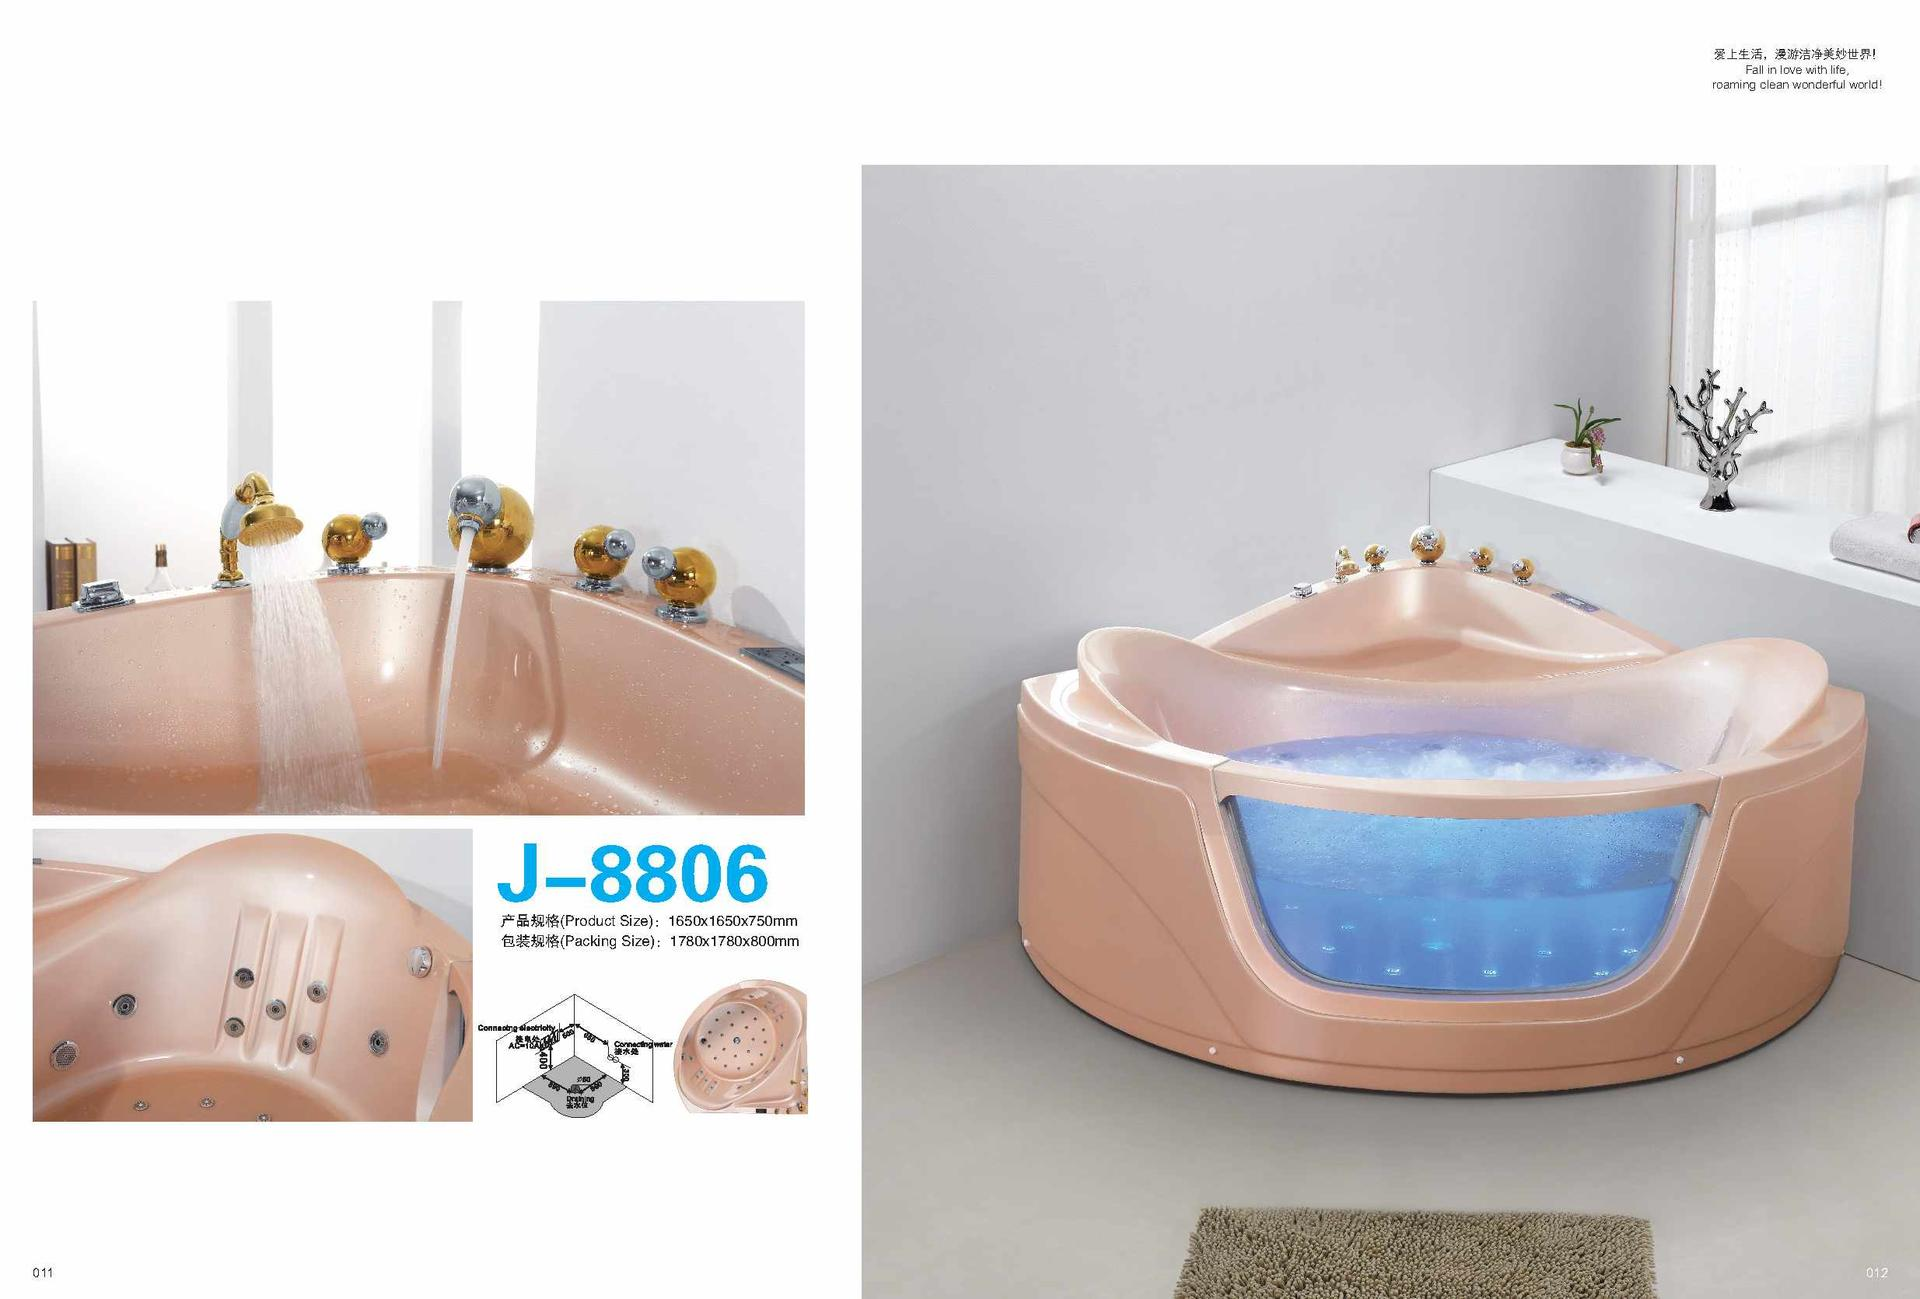 China suppliers hydrotherapy baths sale walk-in tub shower combo with LED Bulbs AD-8806